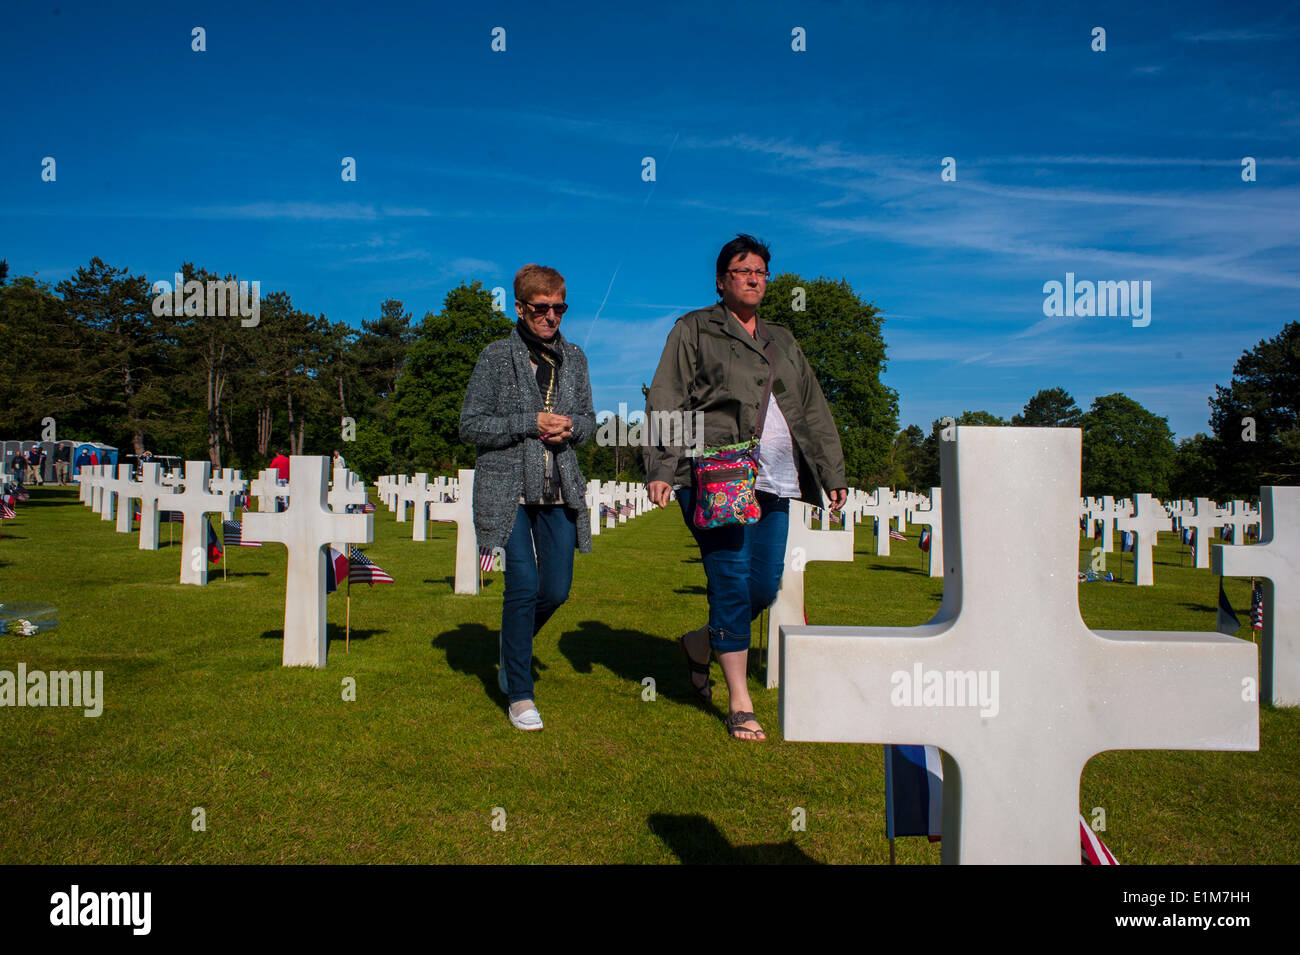 """Colleville, Normandy, France. 6th June, D-Day Anniversary American Military Cemetary, Tourists visiting """"World War Stock Photo"""